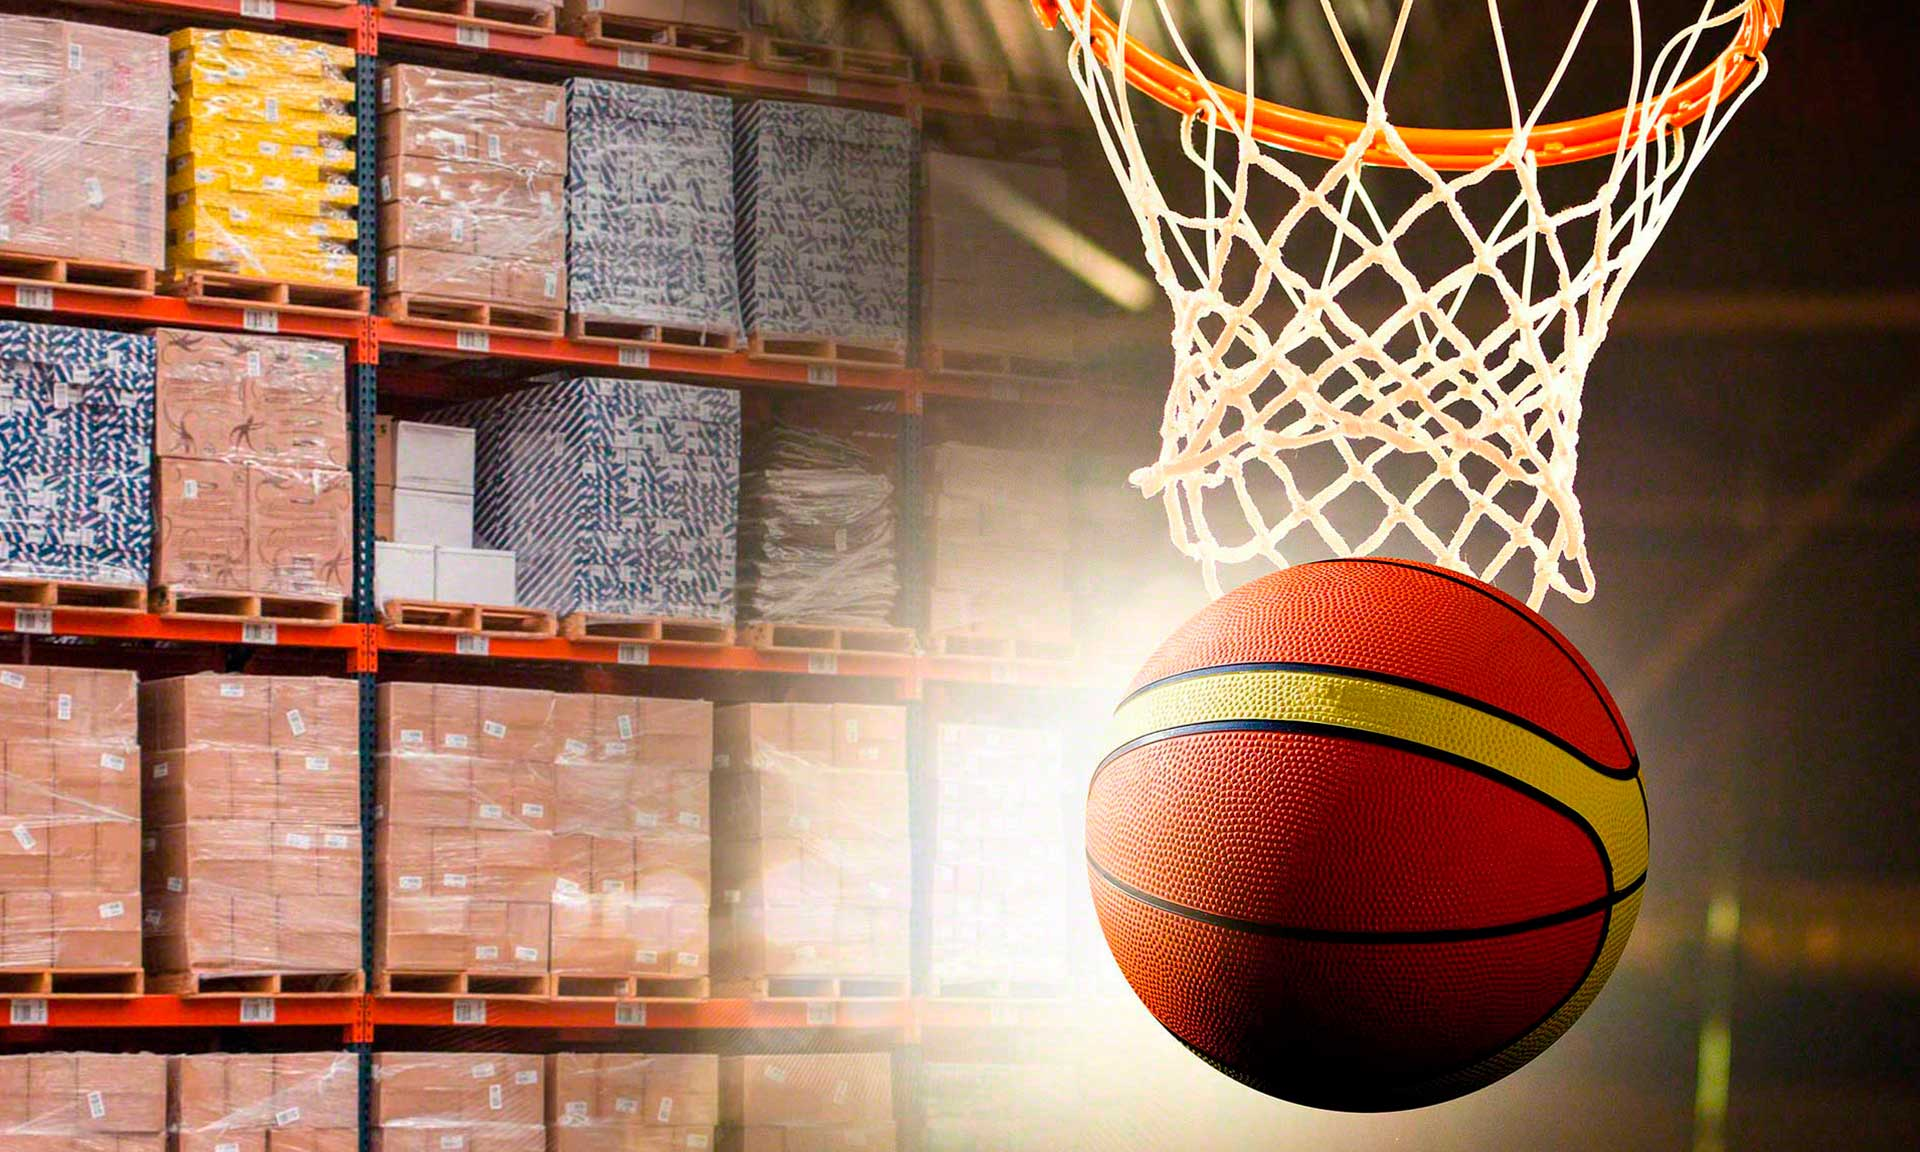 United Sports Brands Europe's warehouse for sporting goods in Belgium